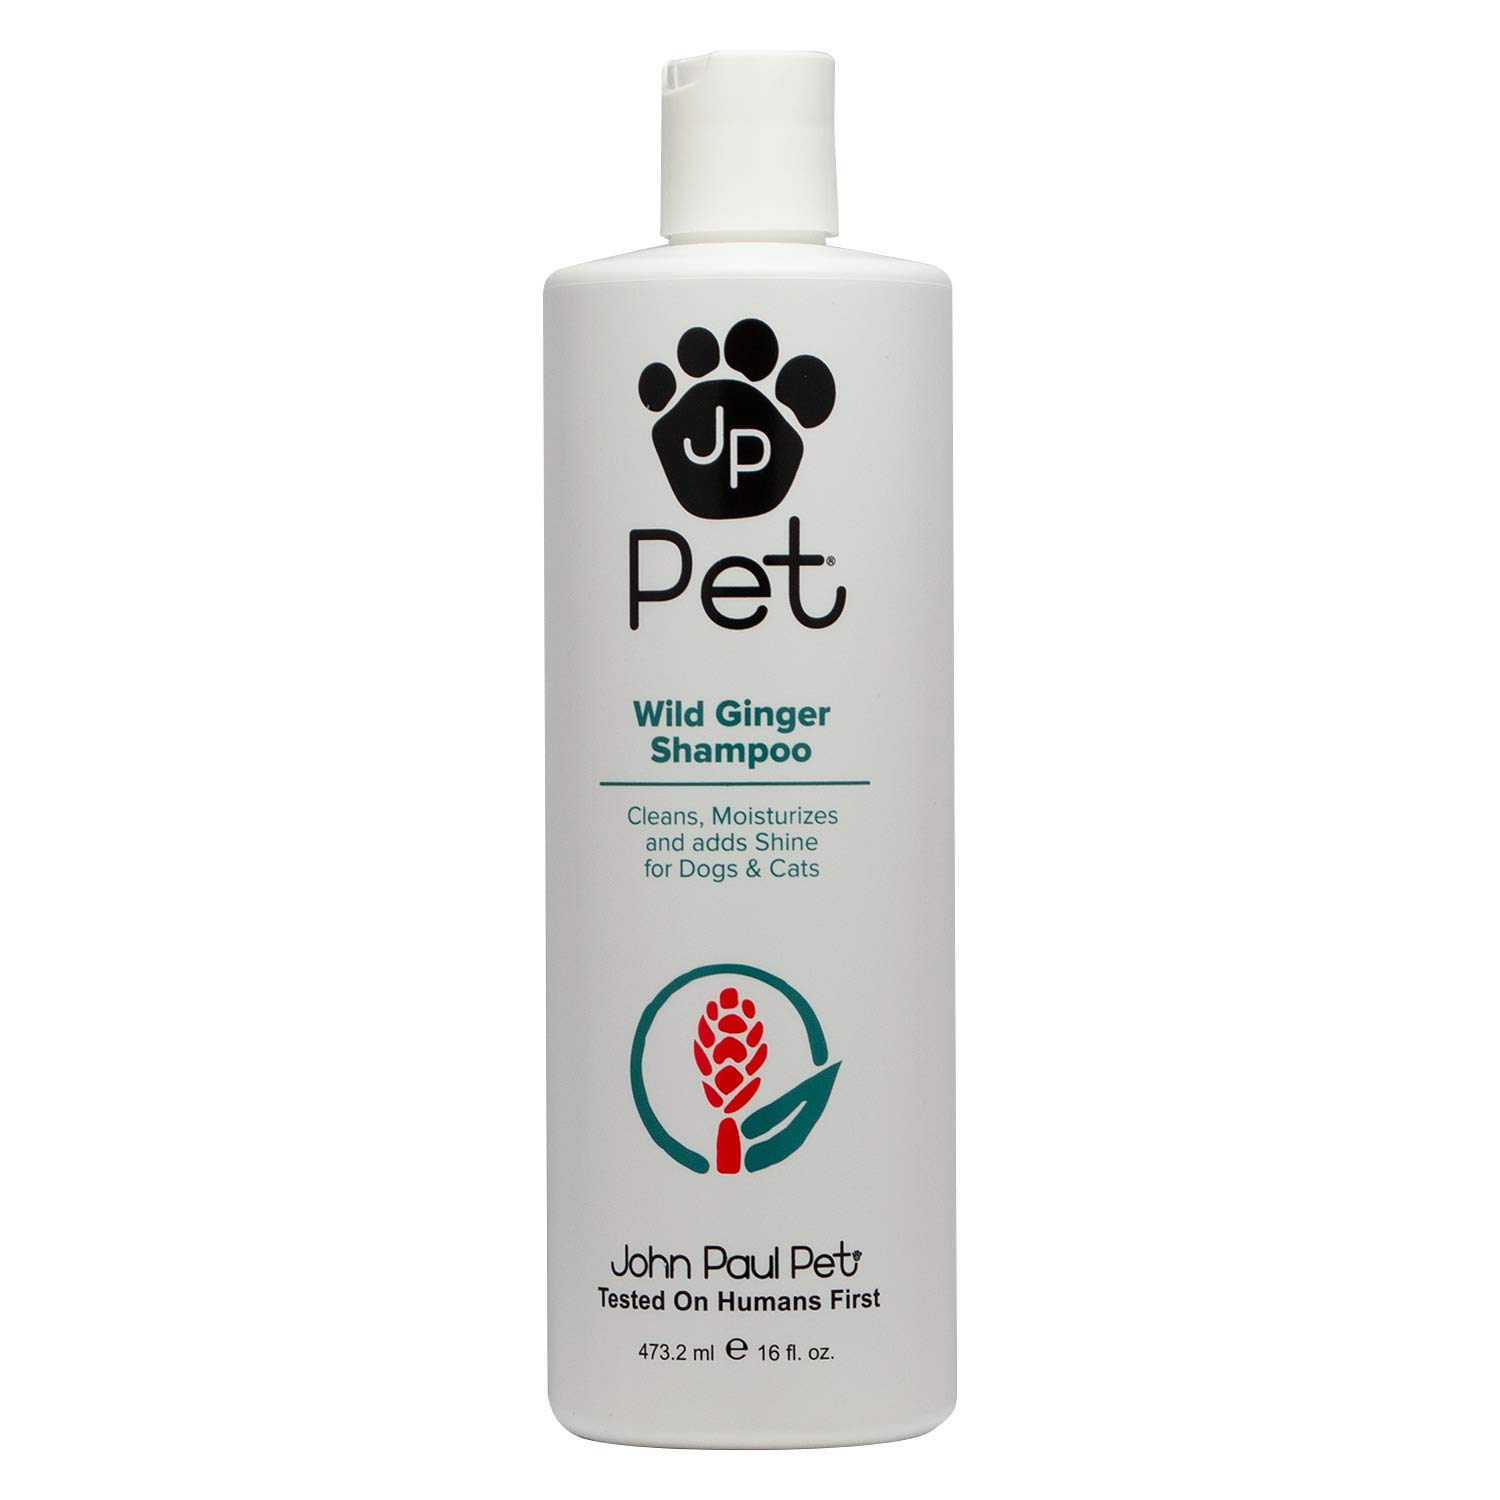 John Paul Pet Wild Ginger Shampoo for Dogs and Cats, Soothes and Cleanses Adding Moisture and Shine, 16-Ounce